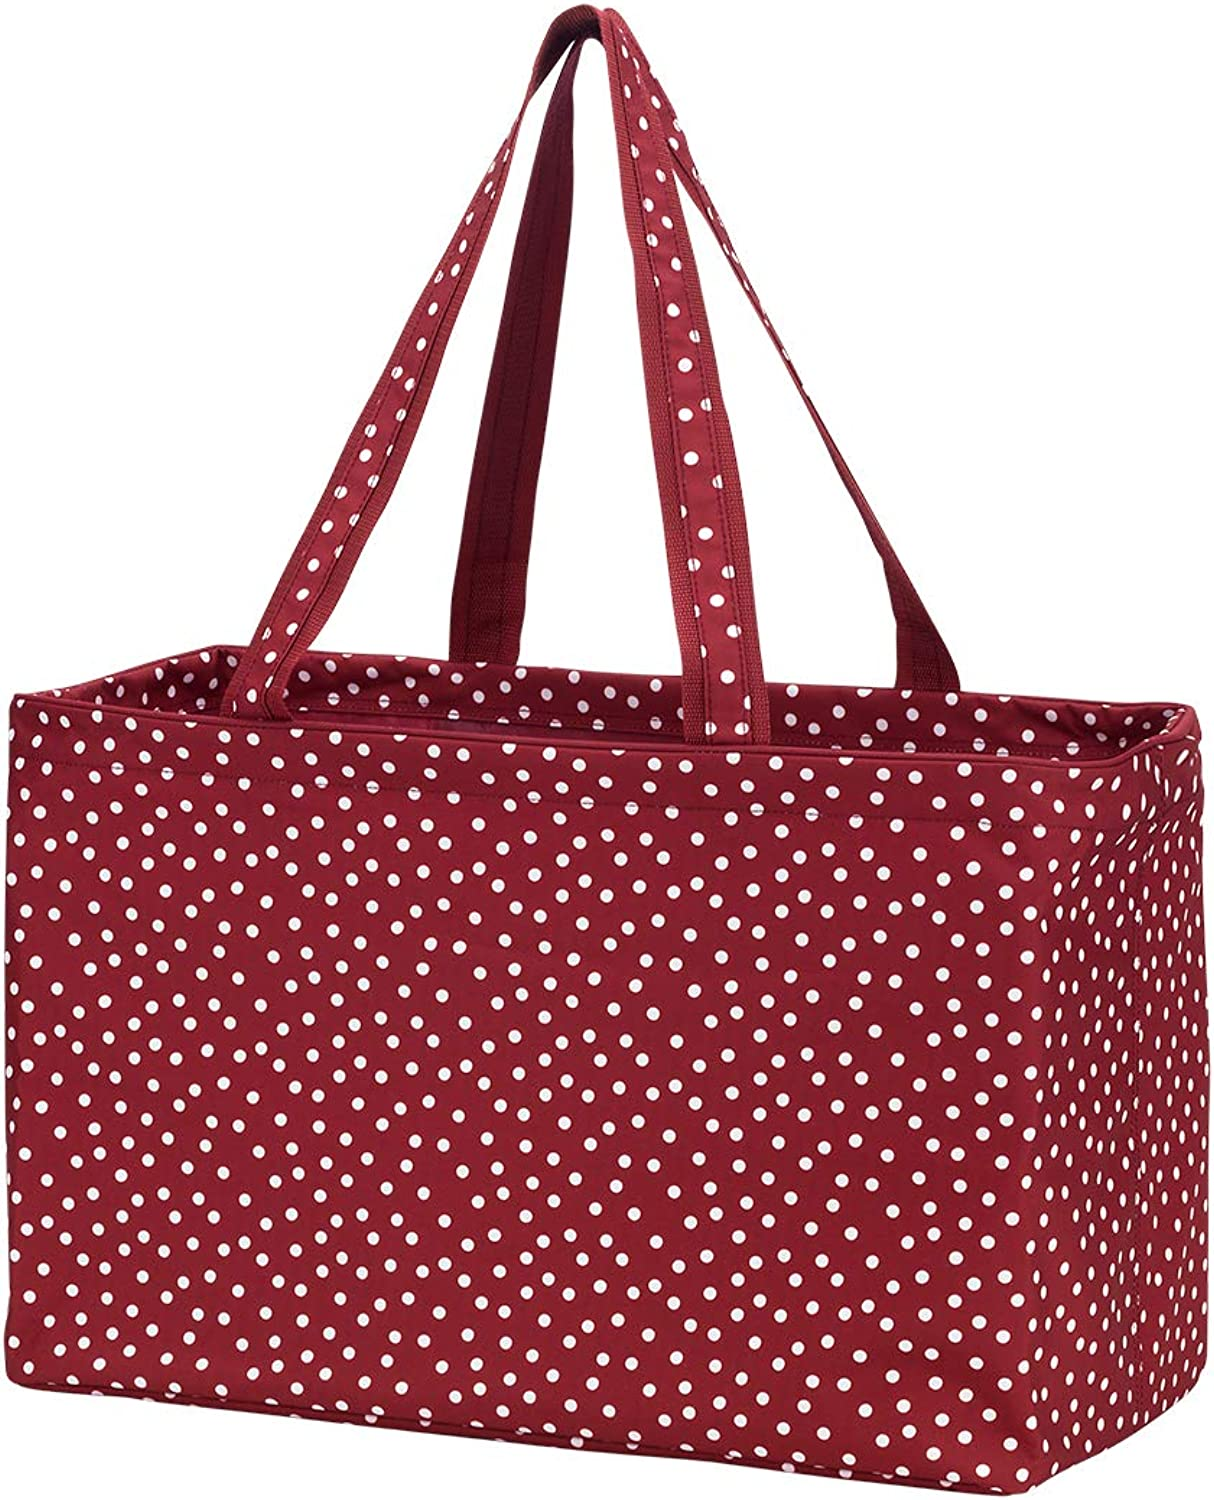 Special Edition High Fashion Print Ultimate Tote  Carry All Organizer Bag  A Tailgate Must Can Be Monogrammed or Personalized